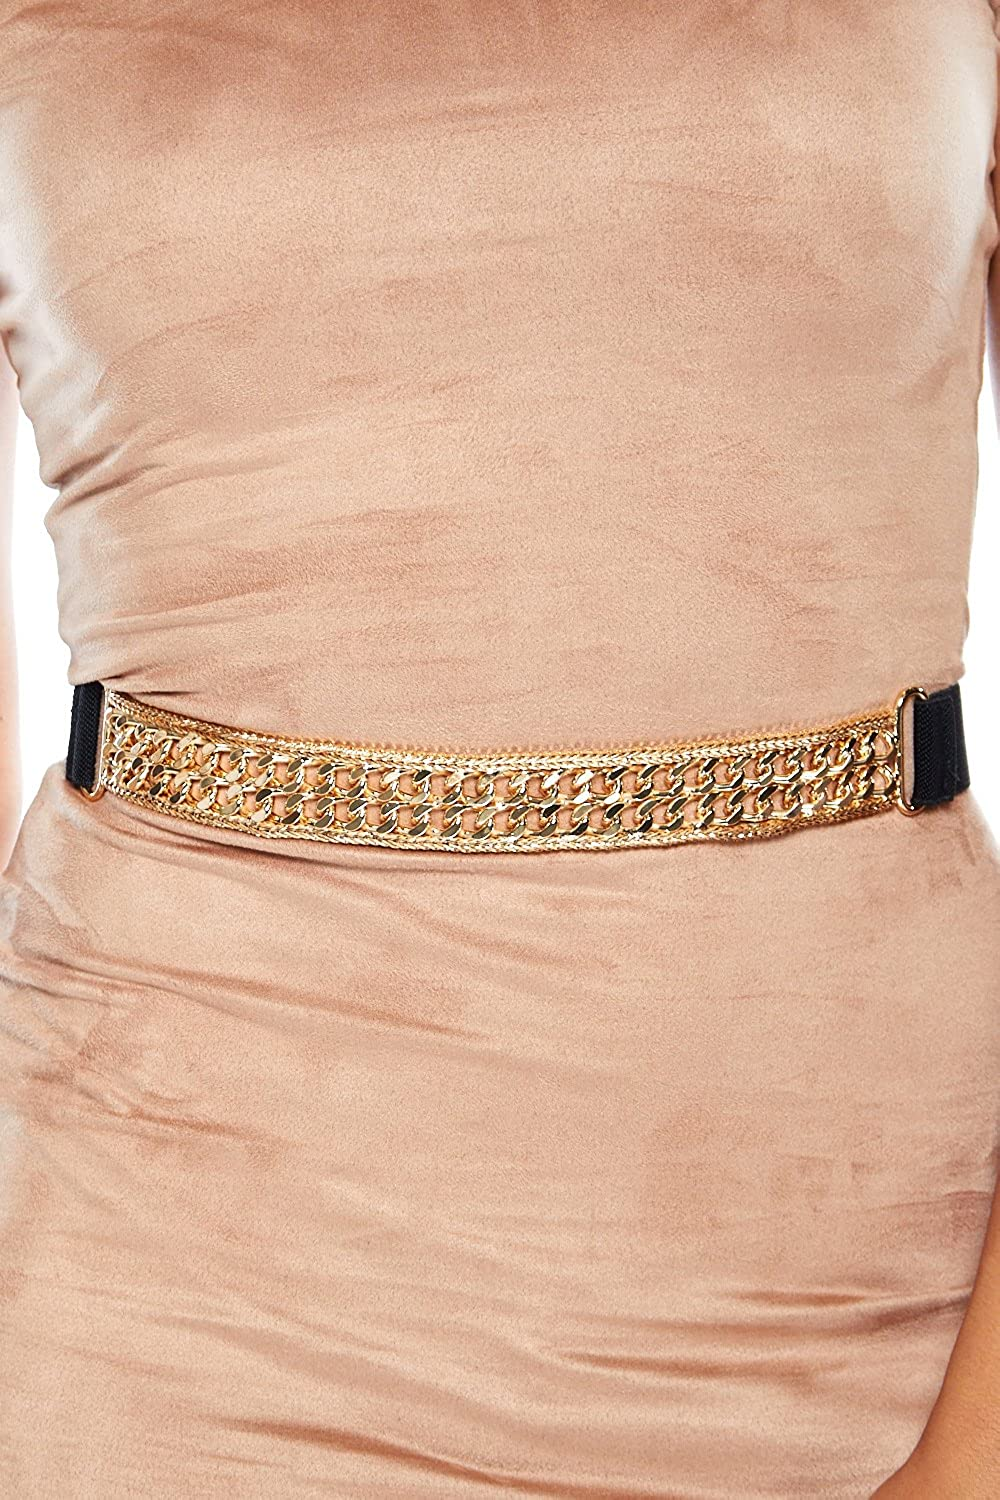 Womens Thick Double Link Chain With Stretchy Band Belt IE3021